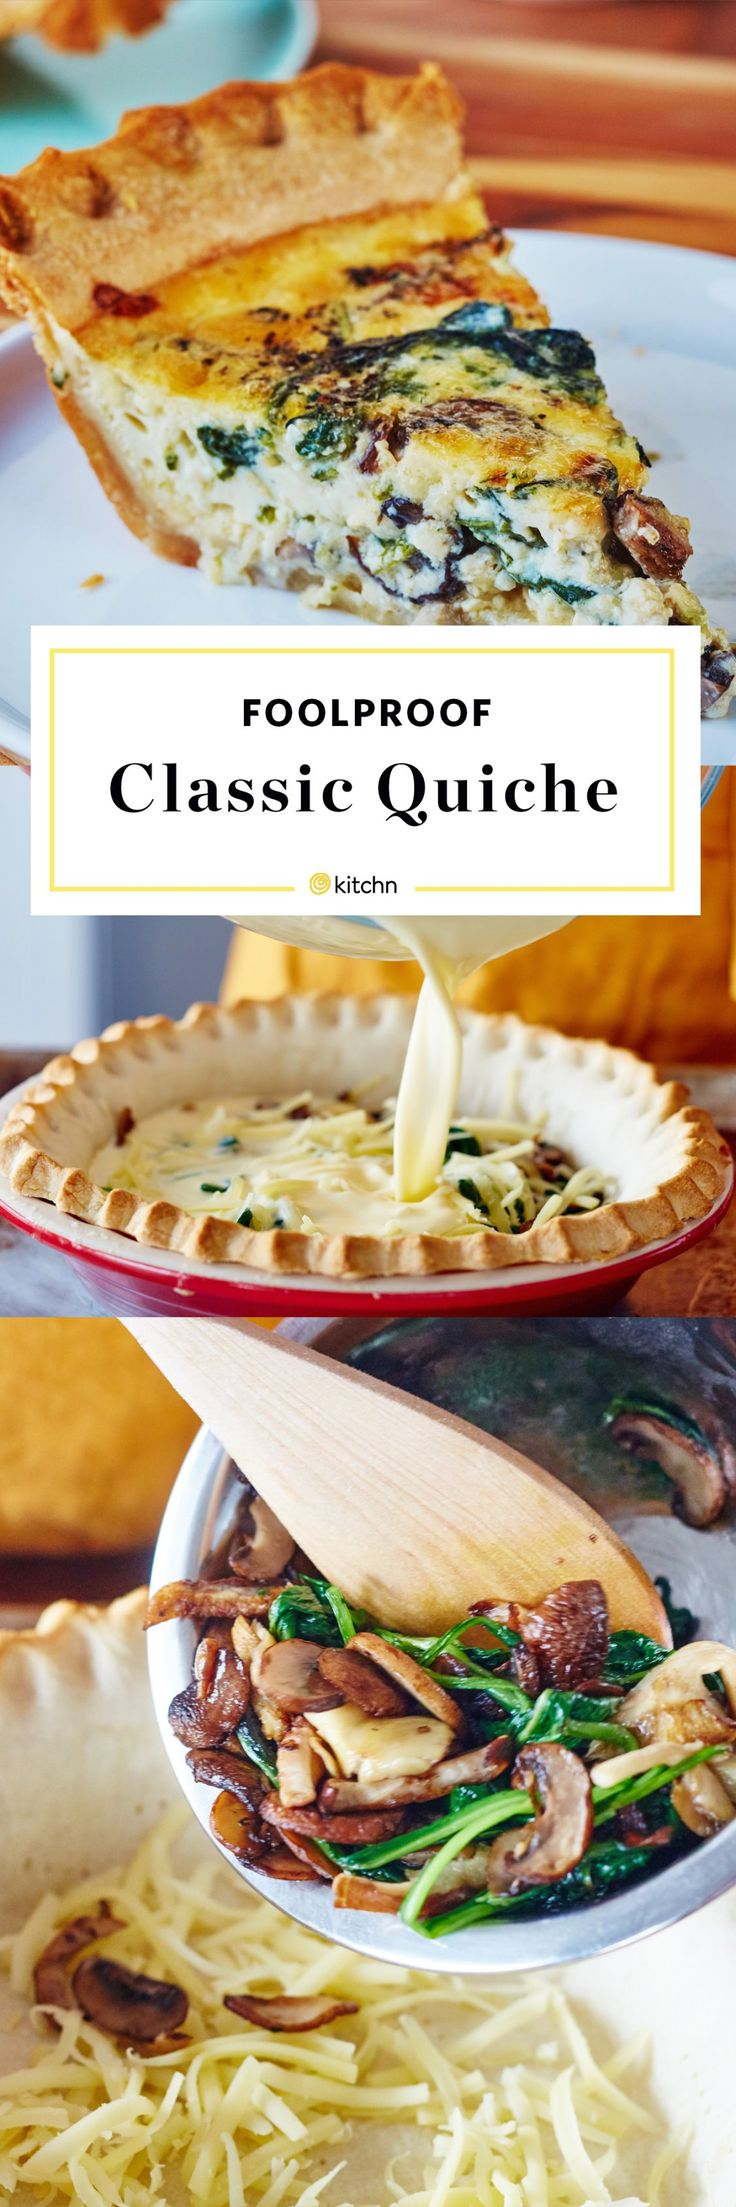 The Best, Foolproof Classic Quiche Recipe. You can use whatever filling you like for this - ham, cheese, bacon, sausage, or lots of vegetables like onions and broccoli -- but we like to keep it simple and easy when it comes to recipes like this and use spinach and mushrooms. This healthy baked pie is great for a healthy lunch, breakfast, or dinner. Make it crustless for low carb meals ideas!